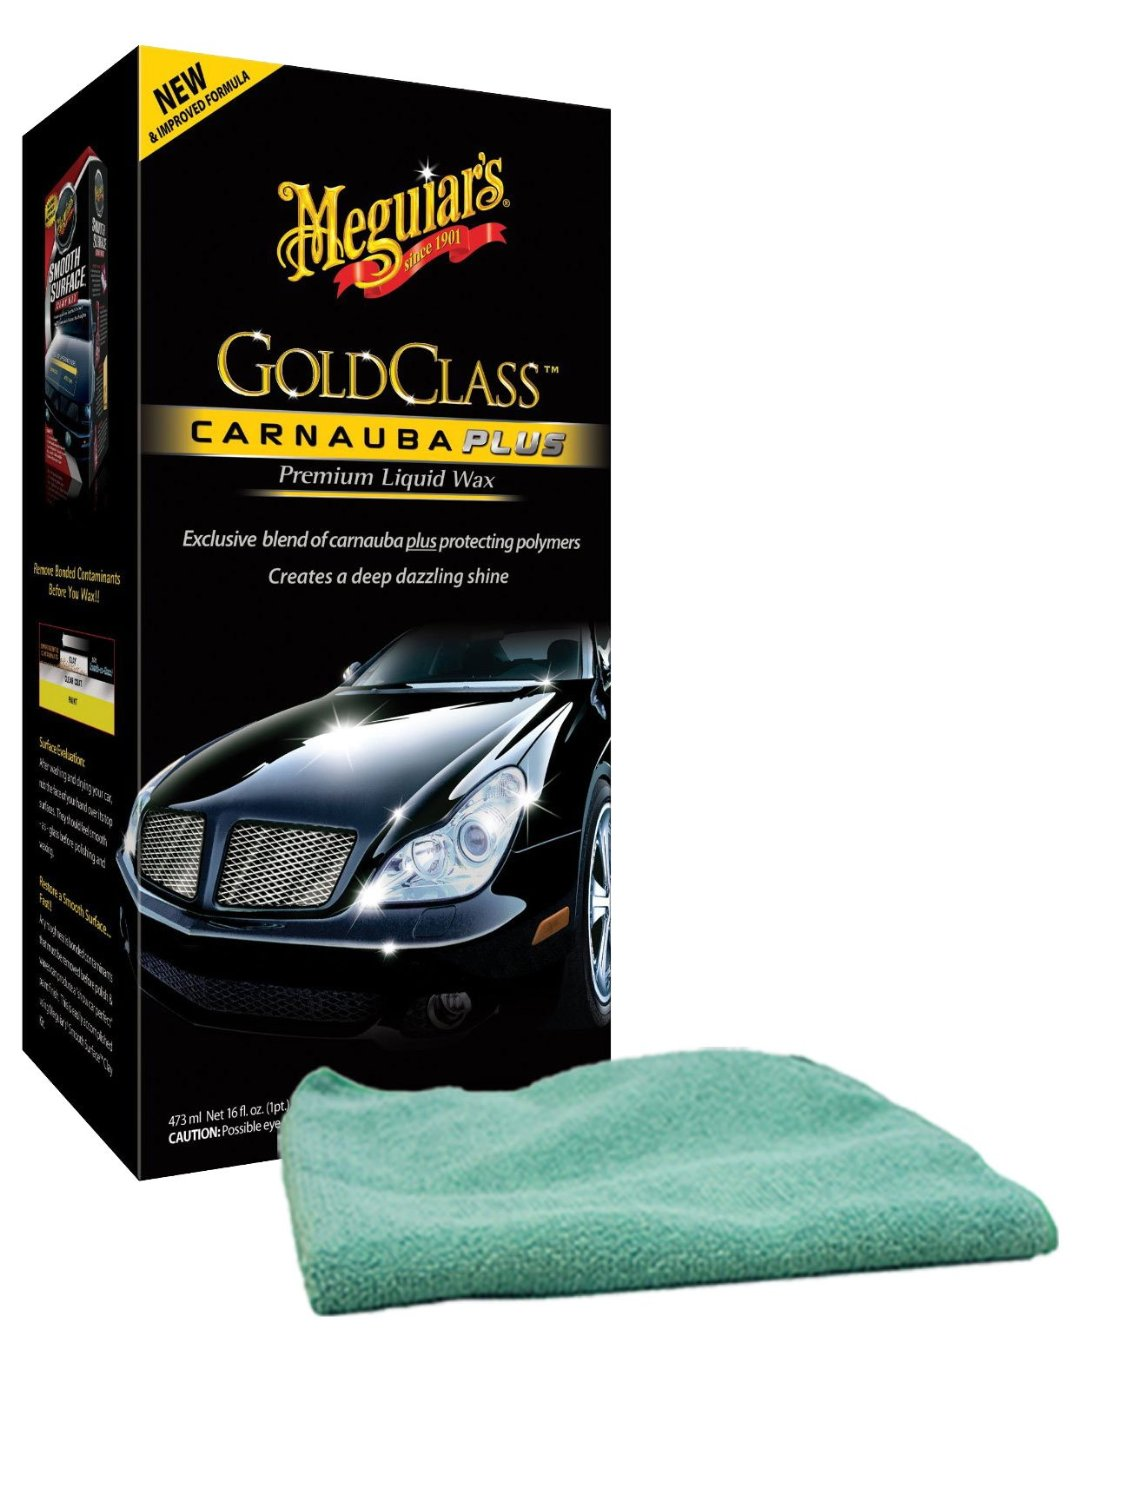 Image of Meguiars Gold Class Carnauba Plus Premium Liquid Wax (16 oz.) & Microfiber Cloth Kit